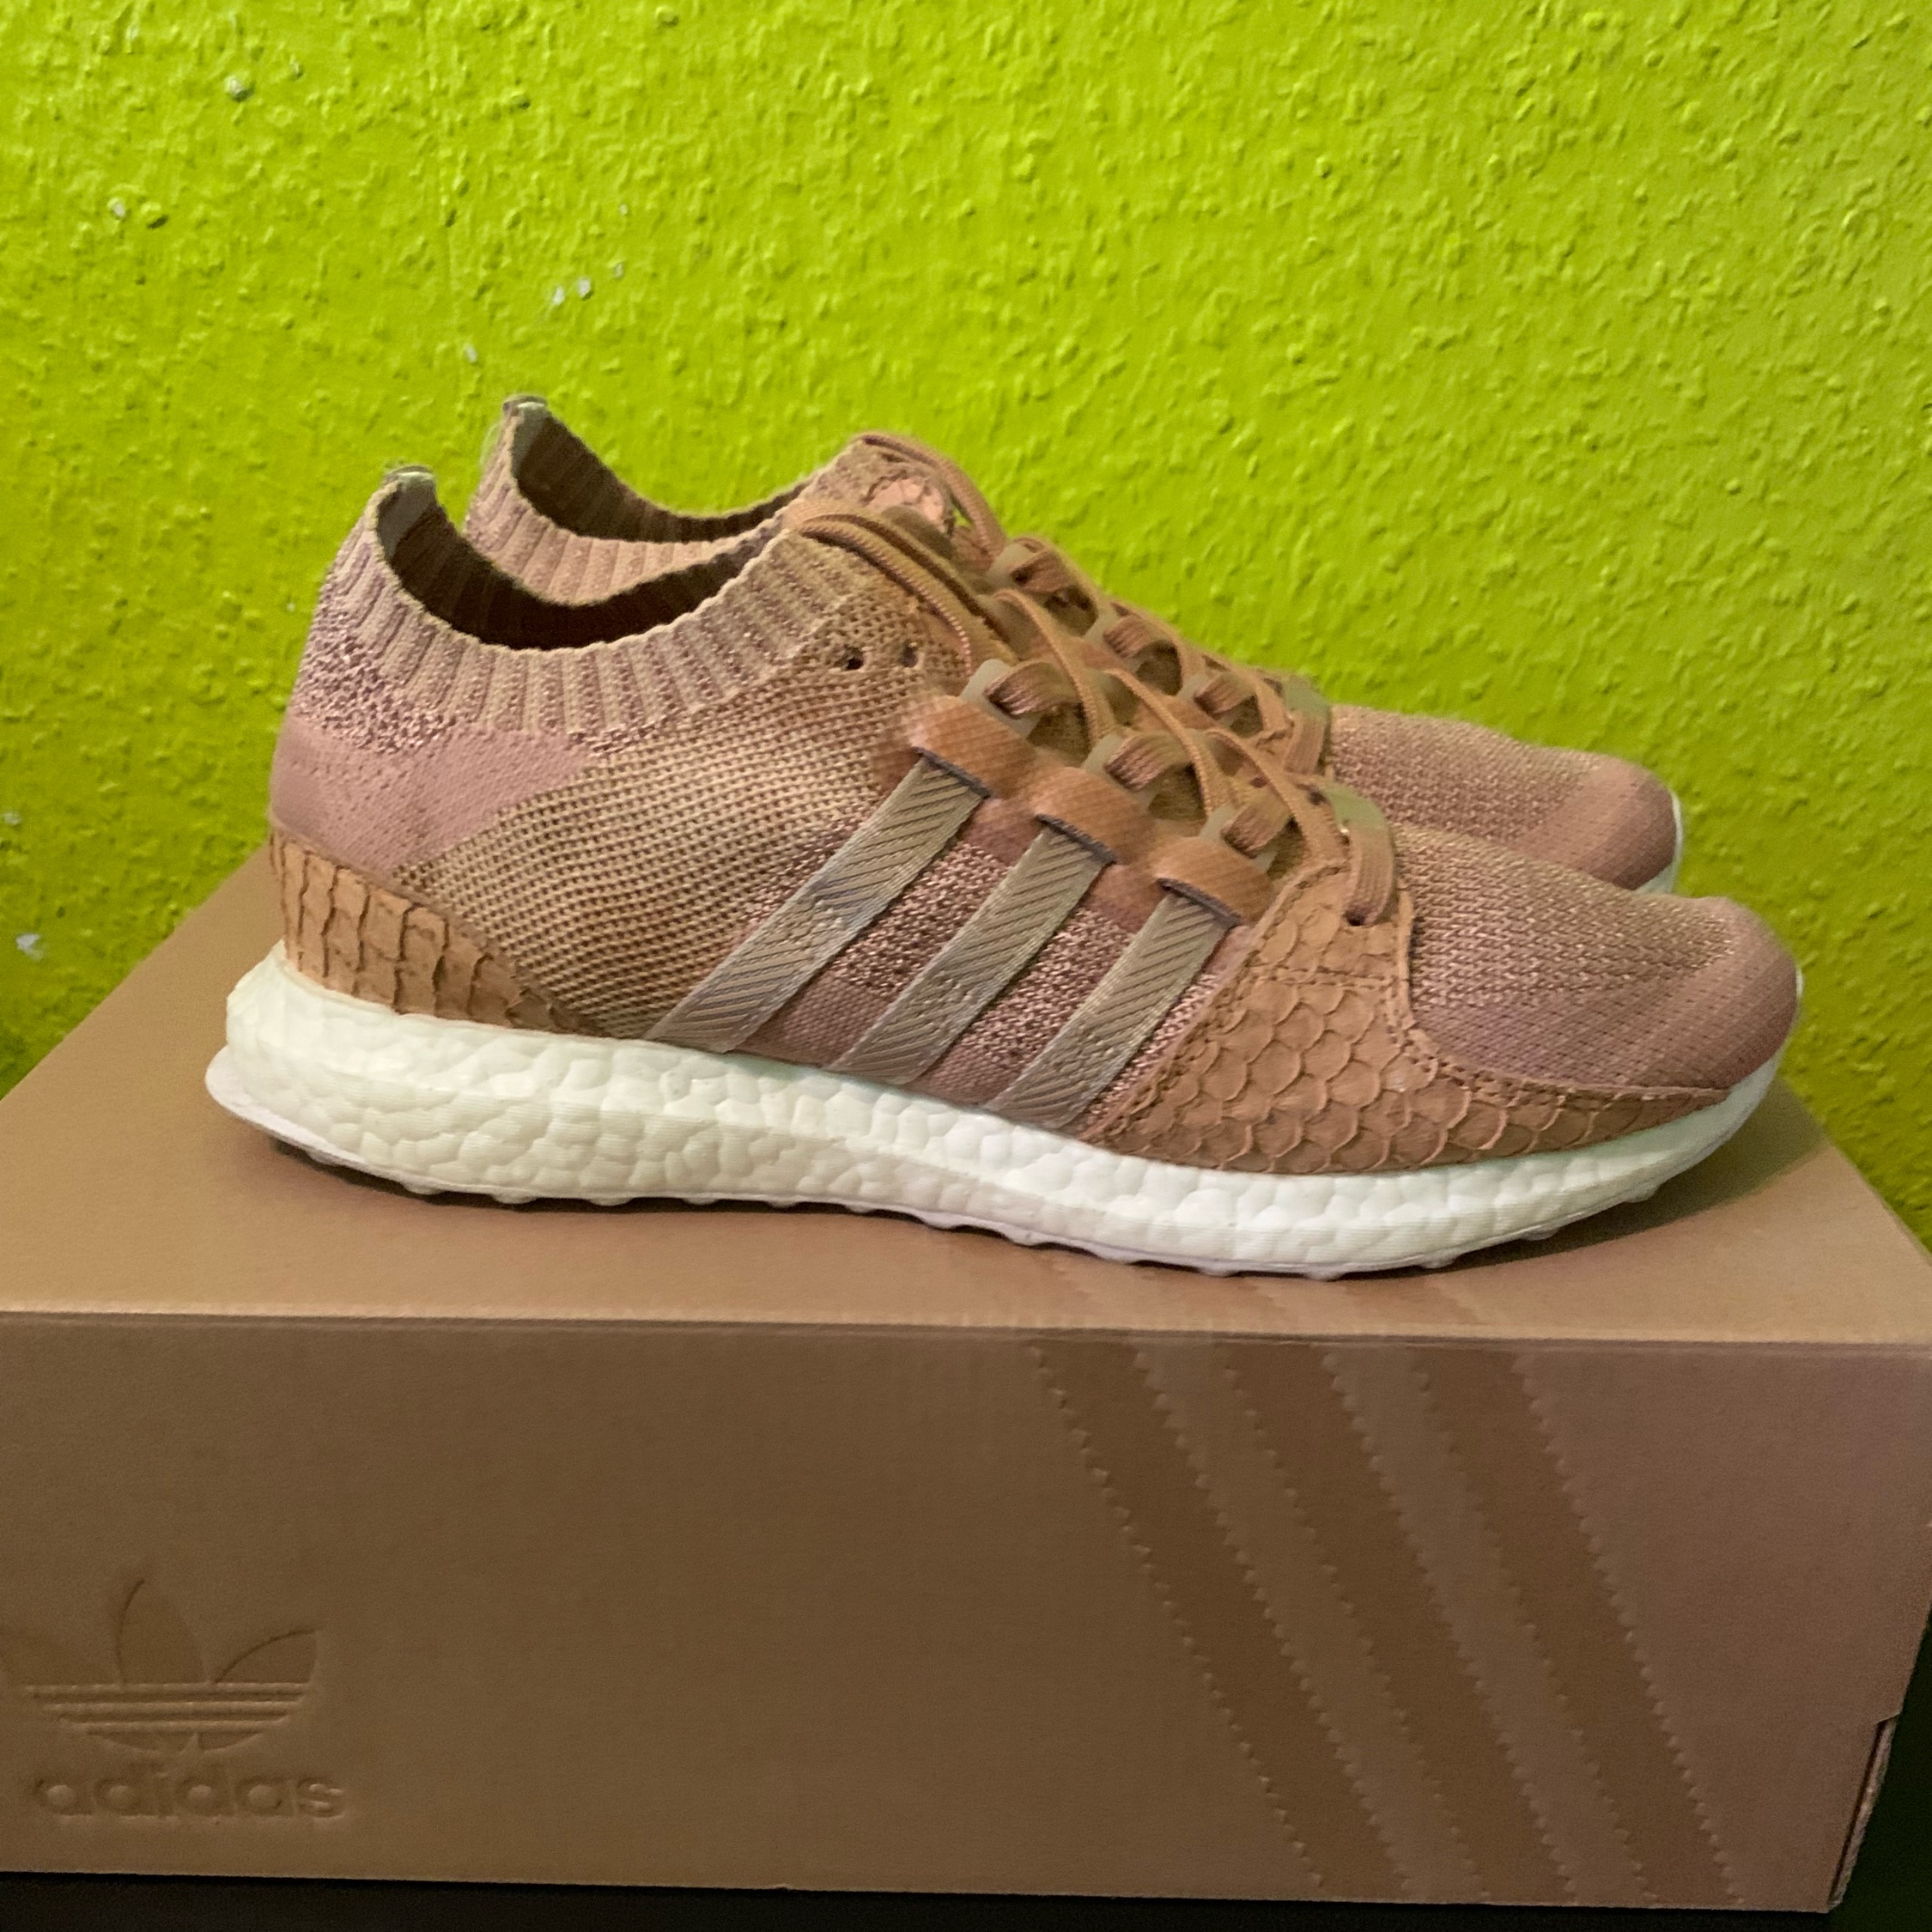 reputable site a685d 017fc Adidas King Push Eqt Support